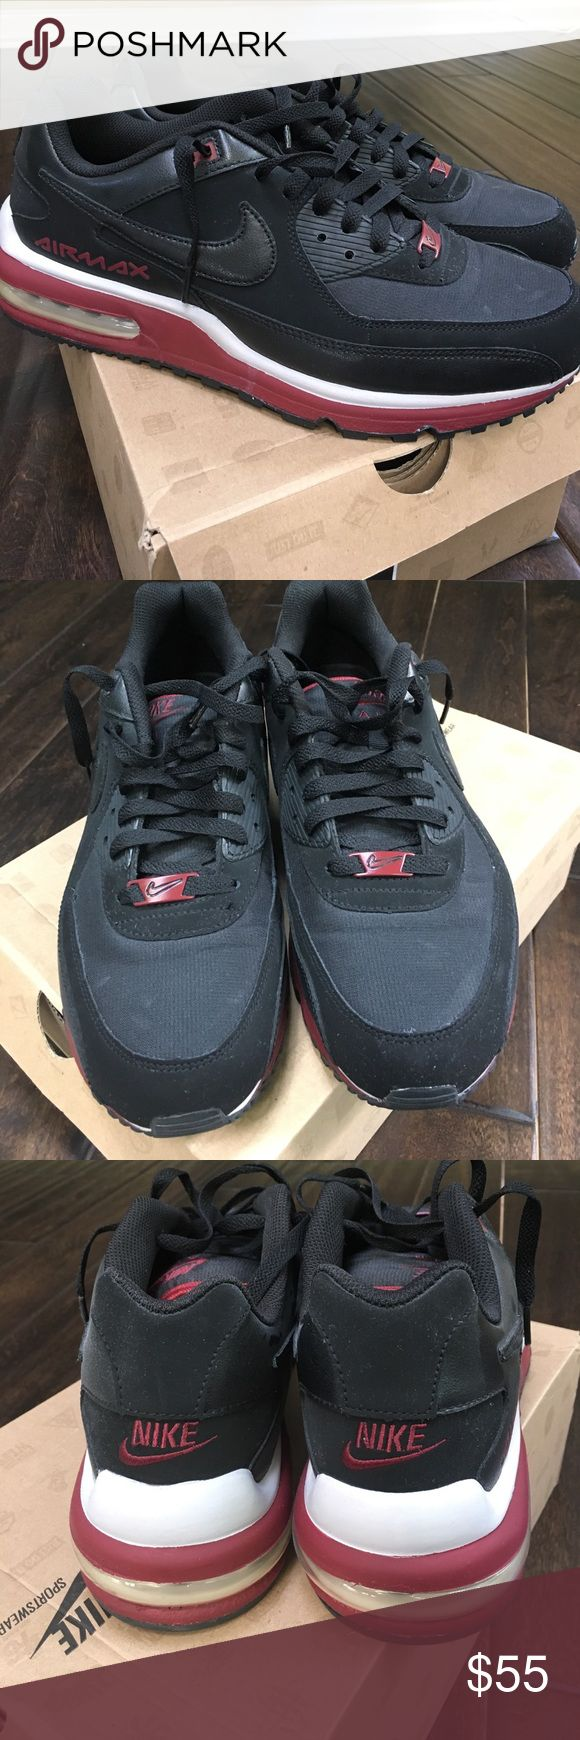 Men's Nike Air Max LTD Brand new. Never worn. Nike Shoes Sneakers